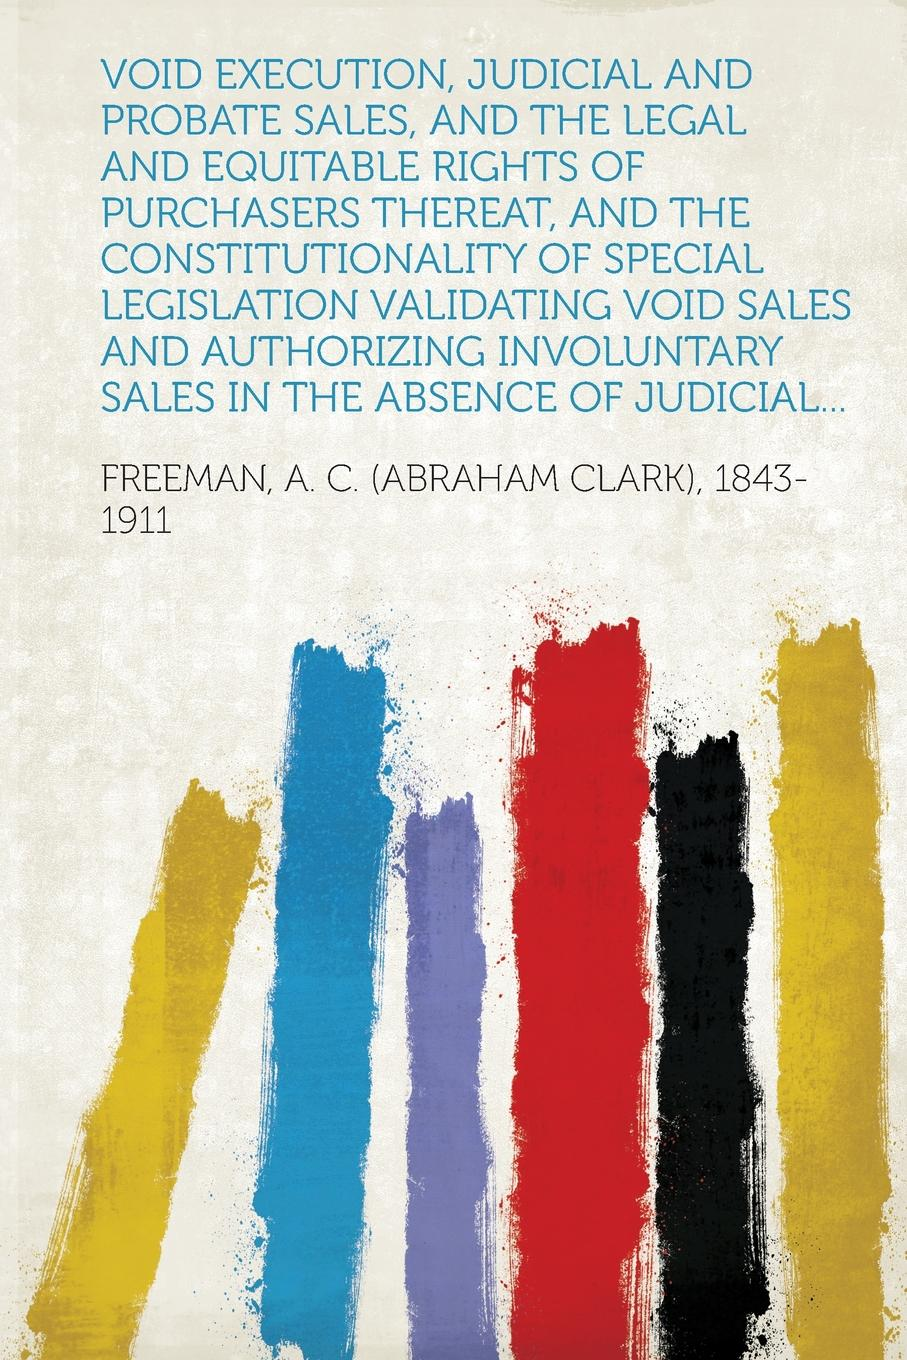 Void Execution, Judicial and Probate Sales, and the Legal and Equitable Rights of Purchasers Thereat, and the Constitutionality of Special Legislation Validating Void Sales and Authorizing Involuntary Sales in the Absence of Judicial... [sa] genuine original special sales spot sick sensors wl9 2p430 2pcs lot